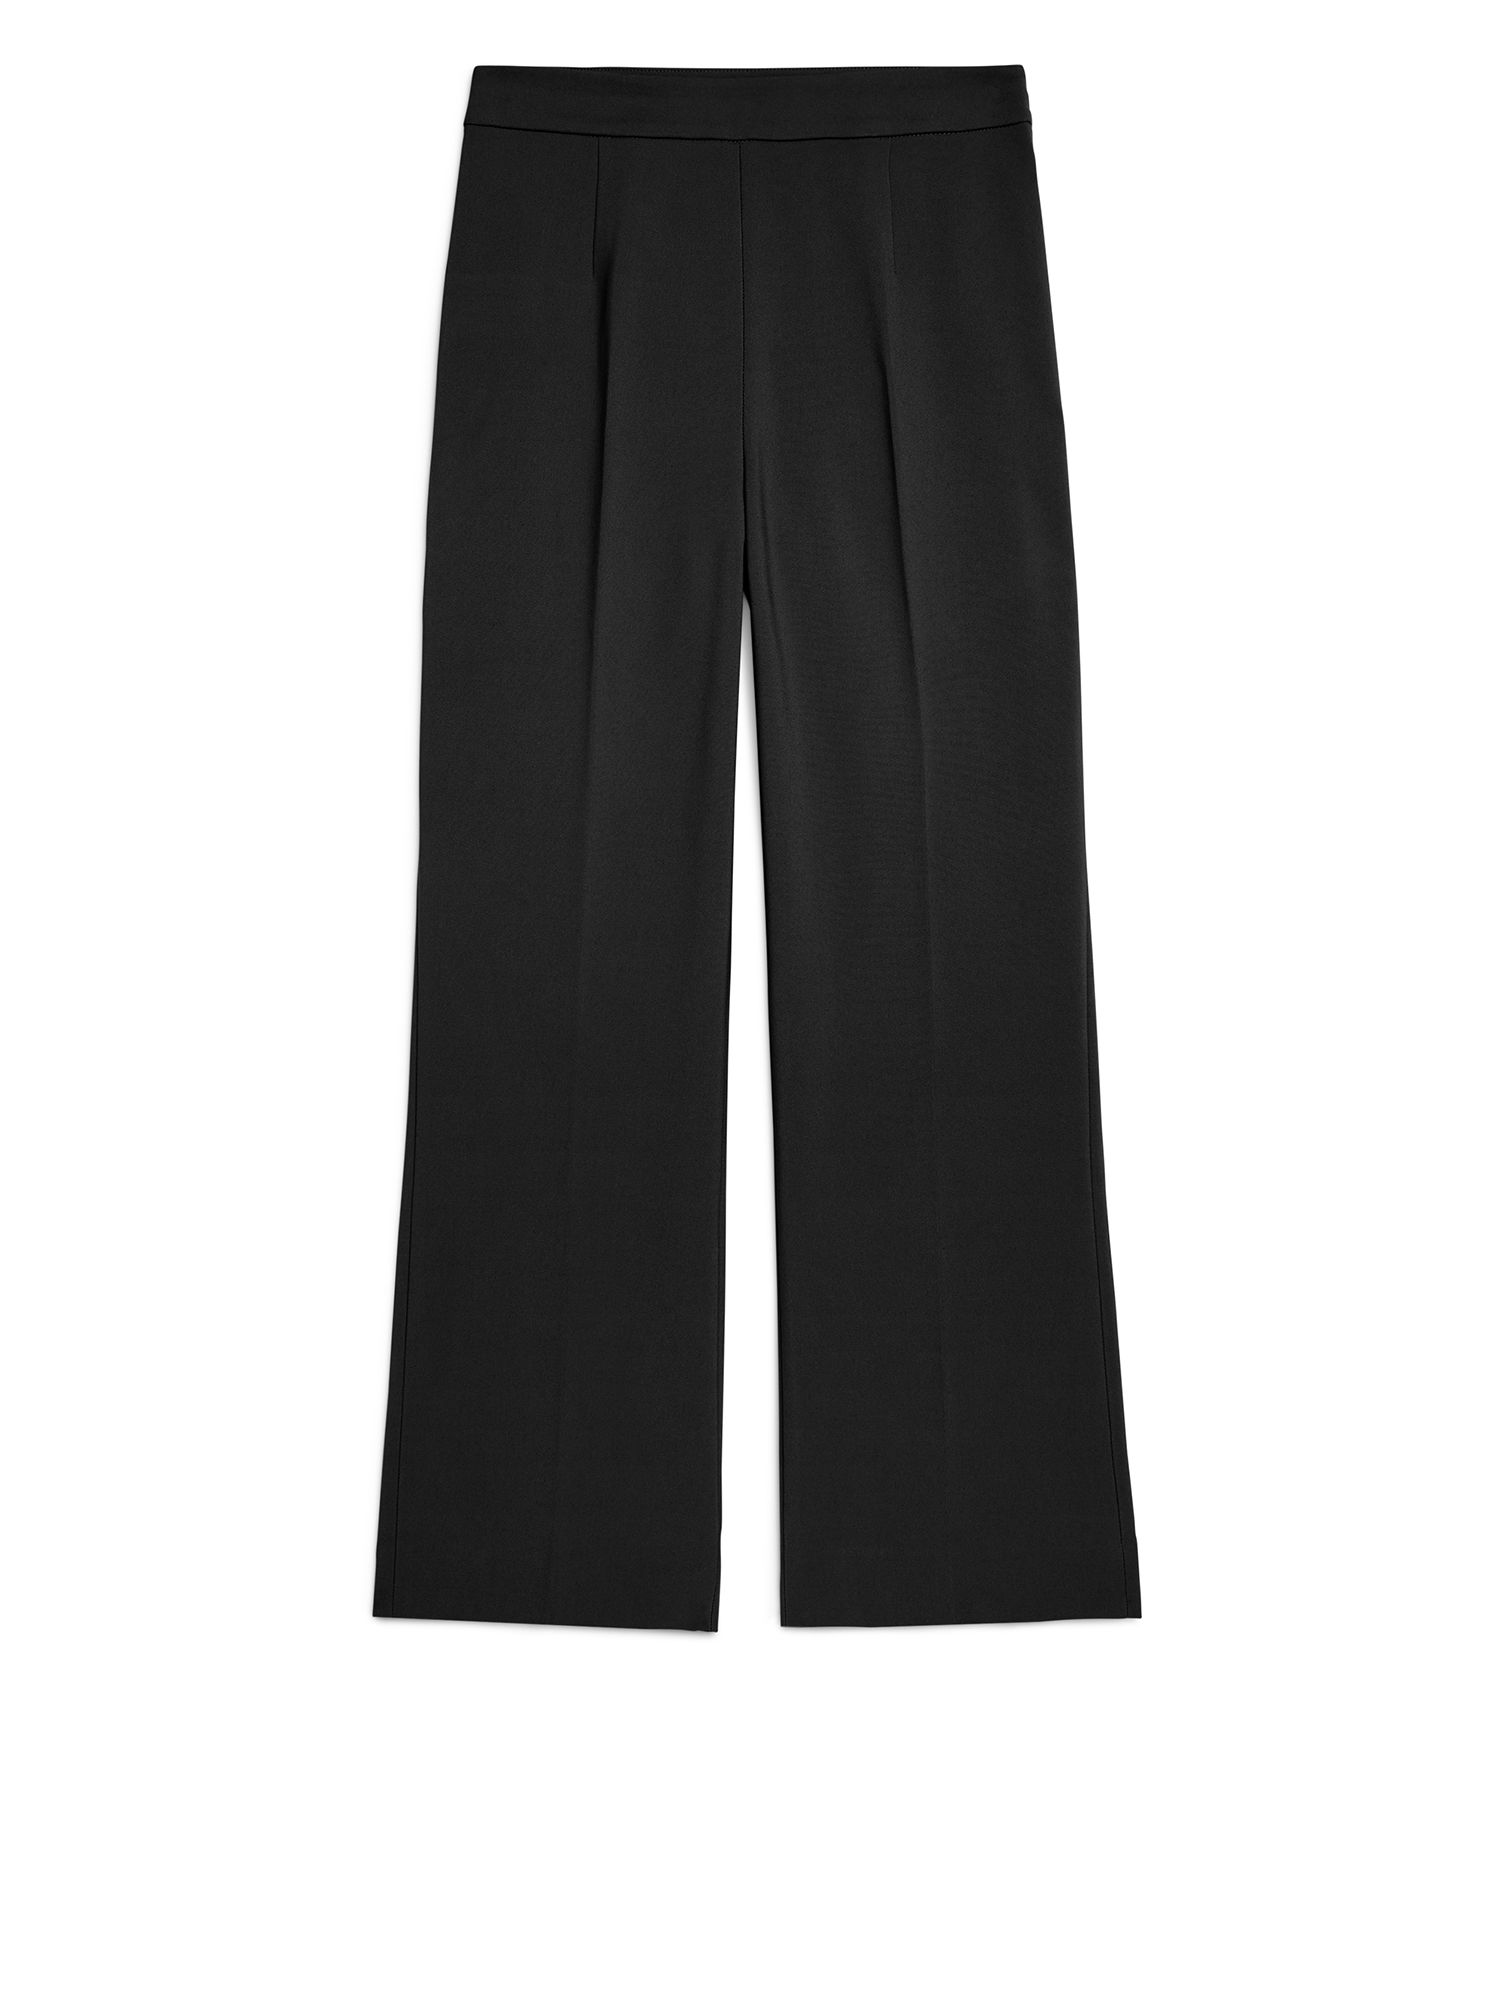 Fabric Swatch image of Arket cropped cotton trousers in black